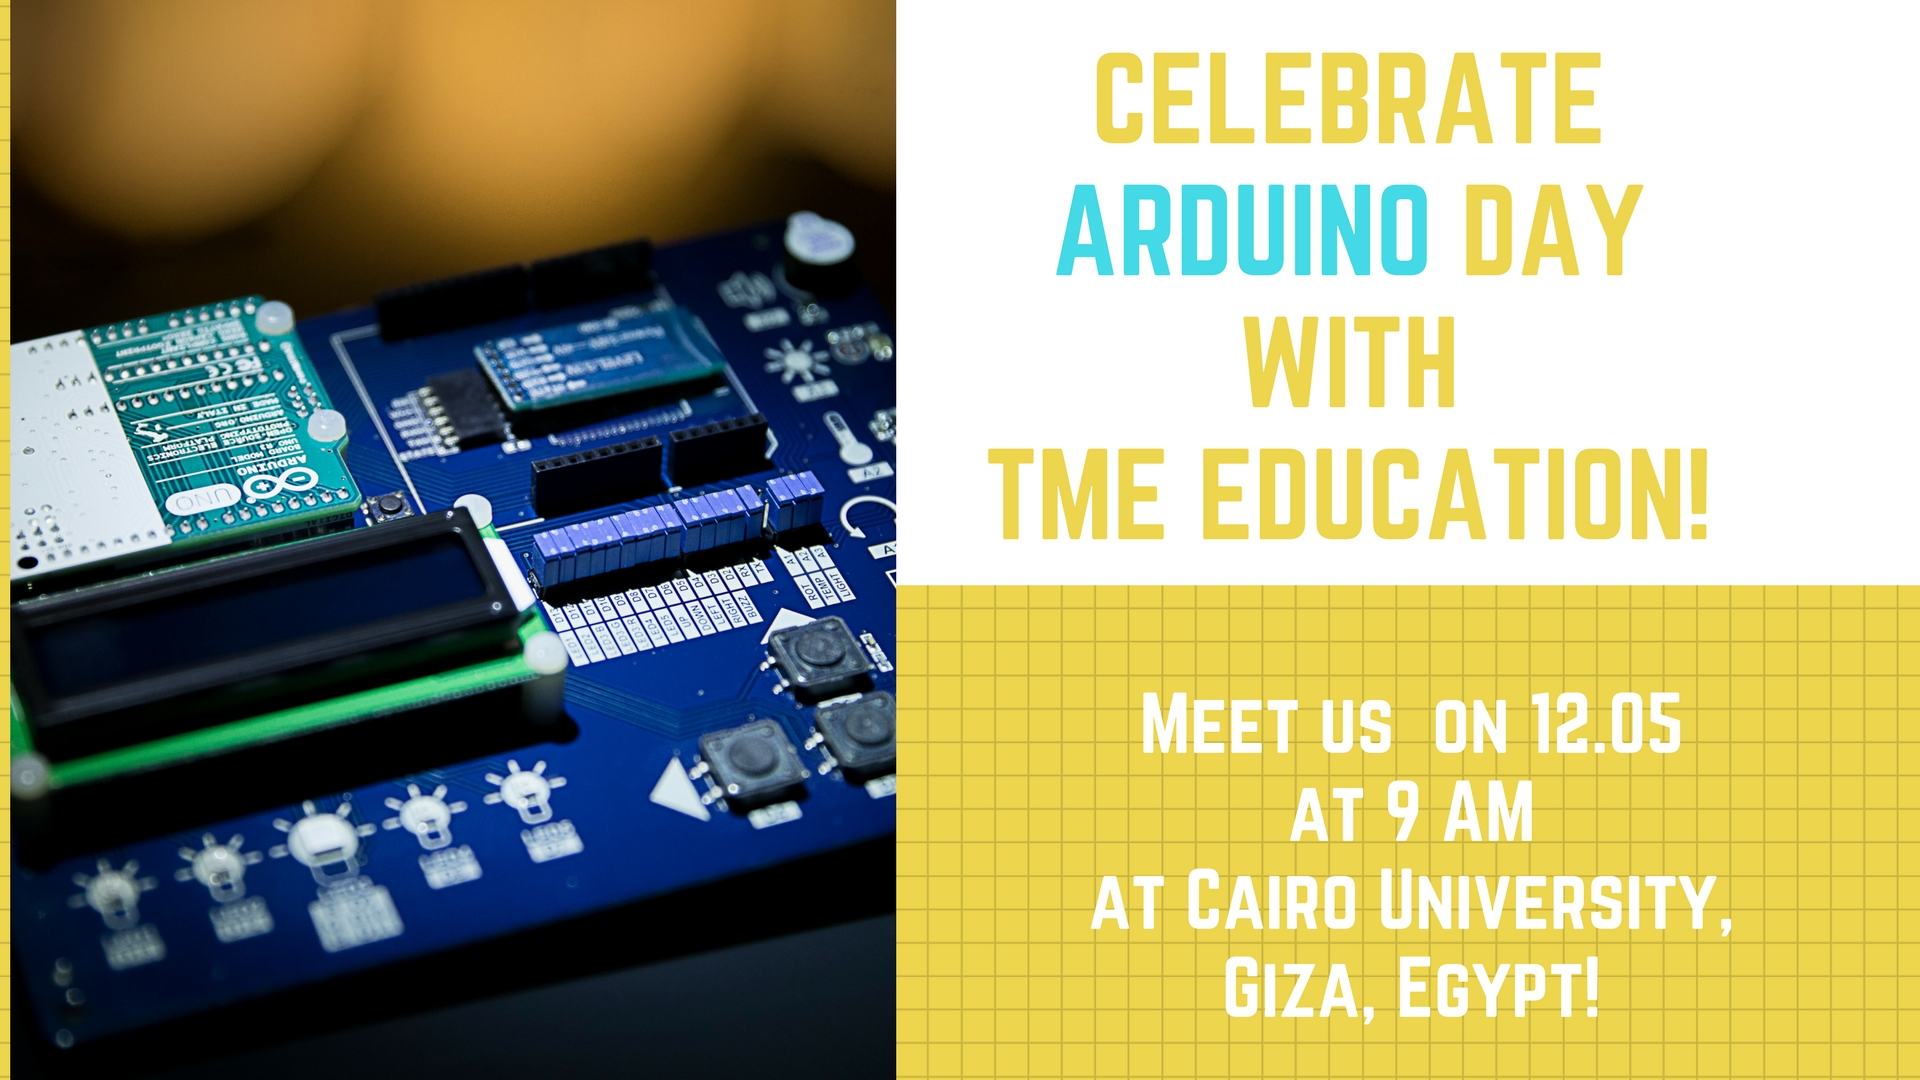 Arduino birthday! Let's celebrate it together in Egypt!